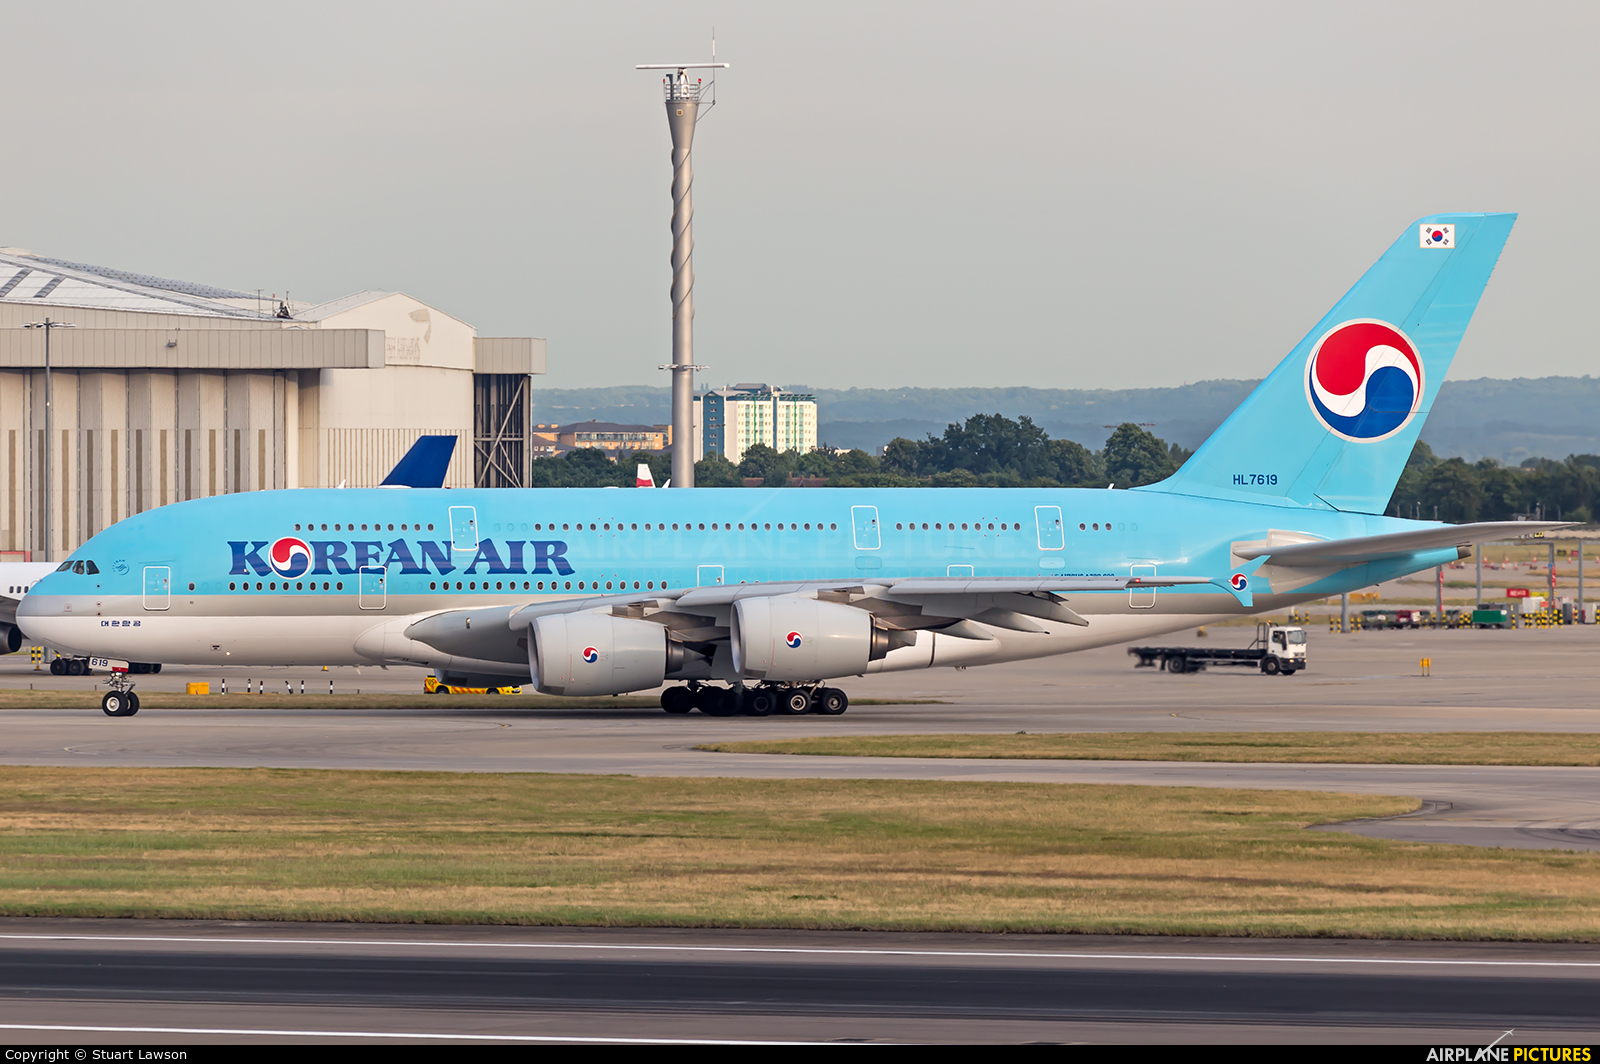 Korean Air HL7619 aircraft at London - Heathrow